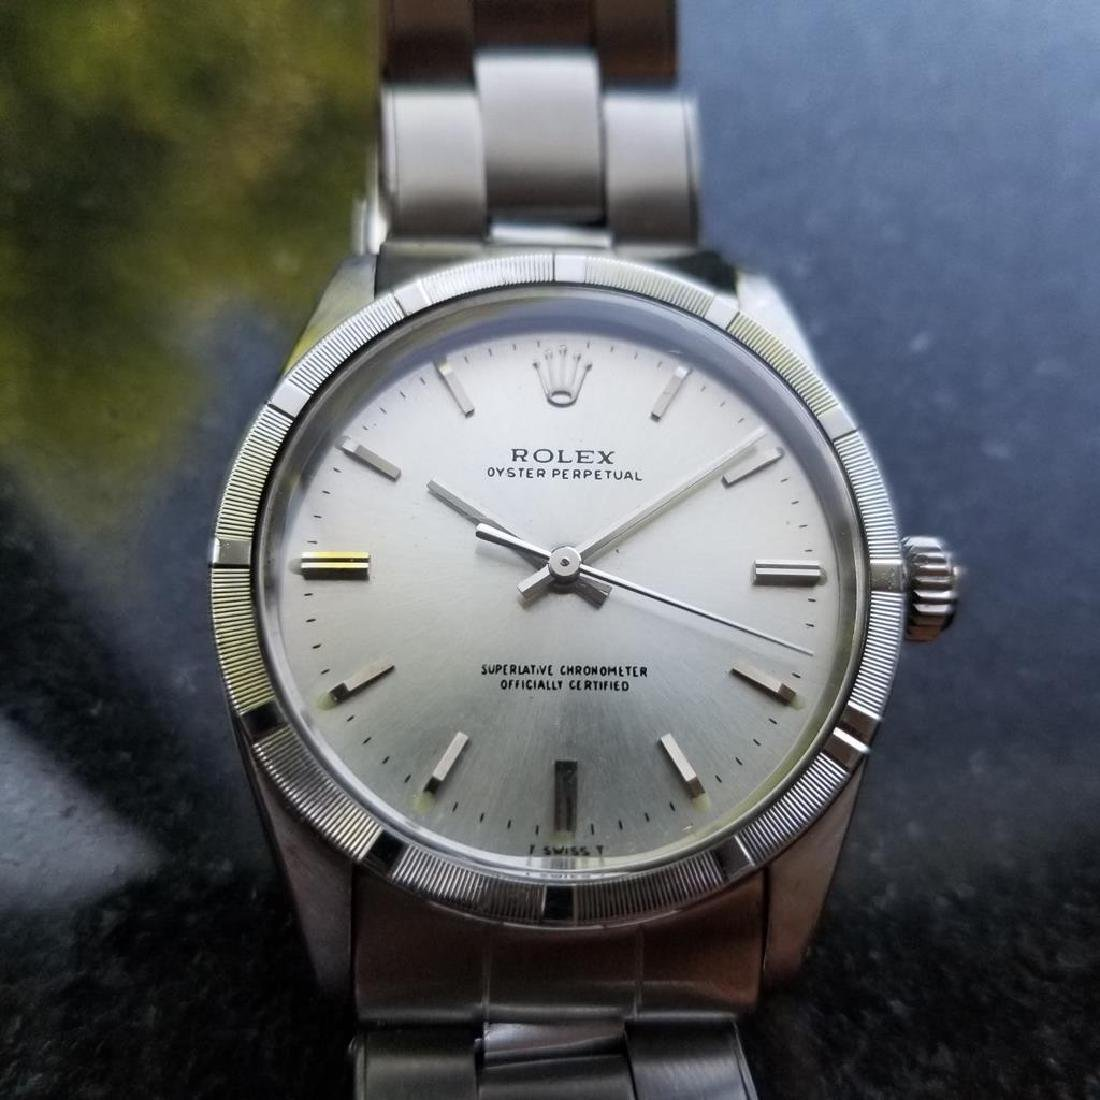 ROLEX Men's Oyster Perpetual 1007 Automatic cal.1570 - 3